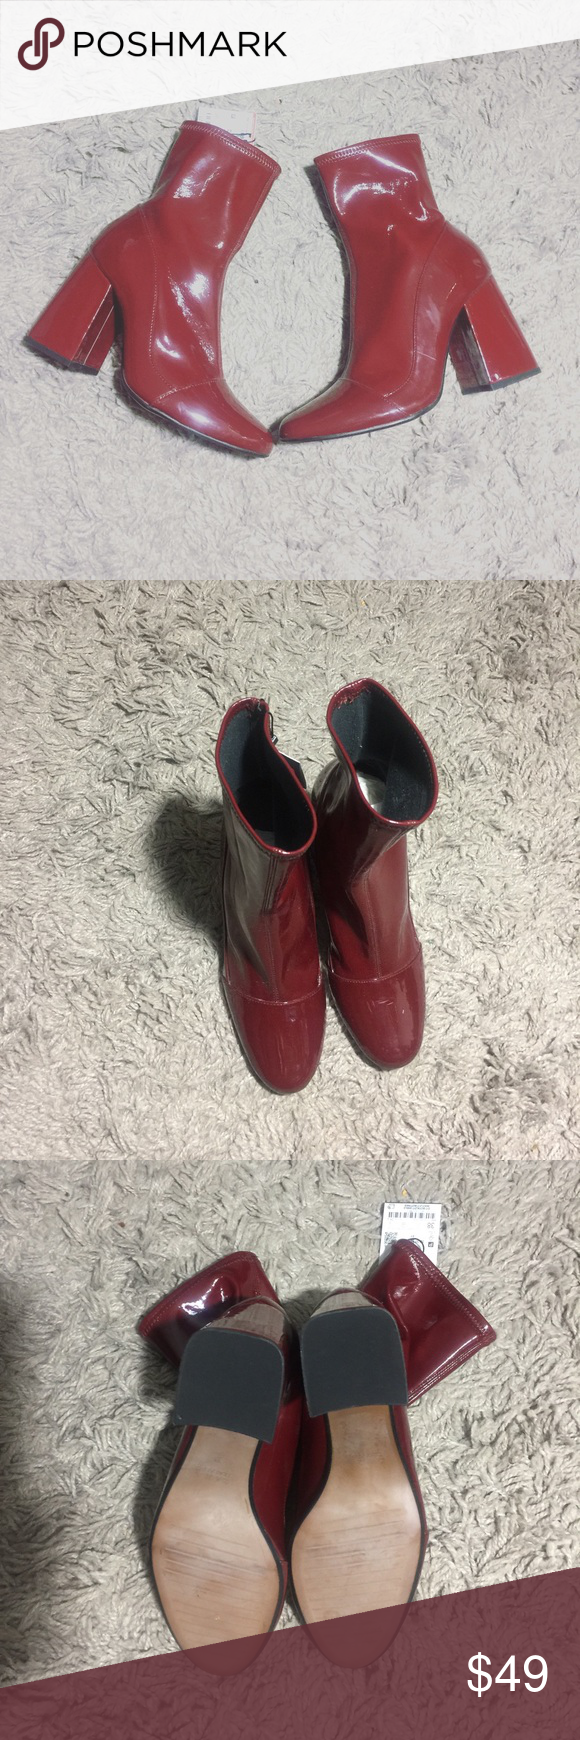 d80278057c4 Zara Burgundy Patent Leather Booties Patent Leather ankle booties never  worn w/ tags from Zara Zara Shoes Ankle Boots & Booties